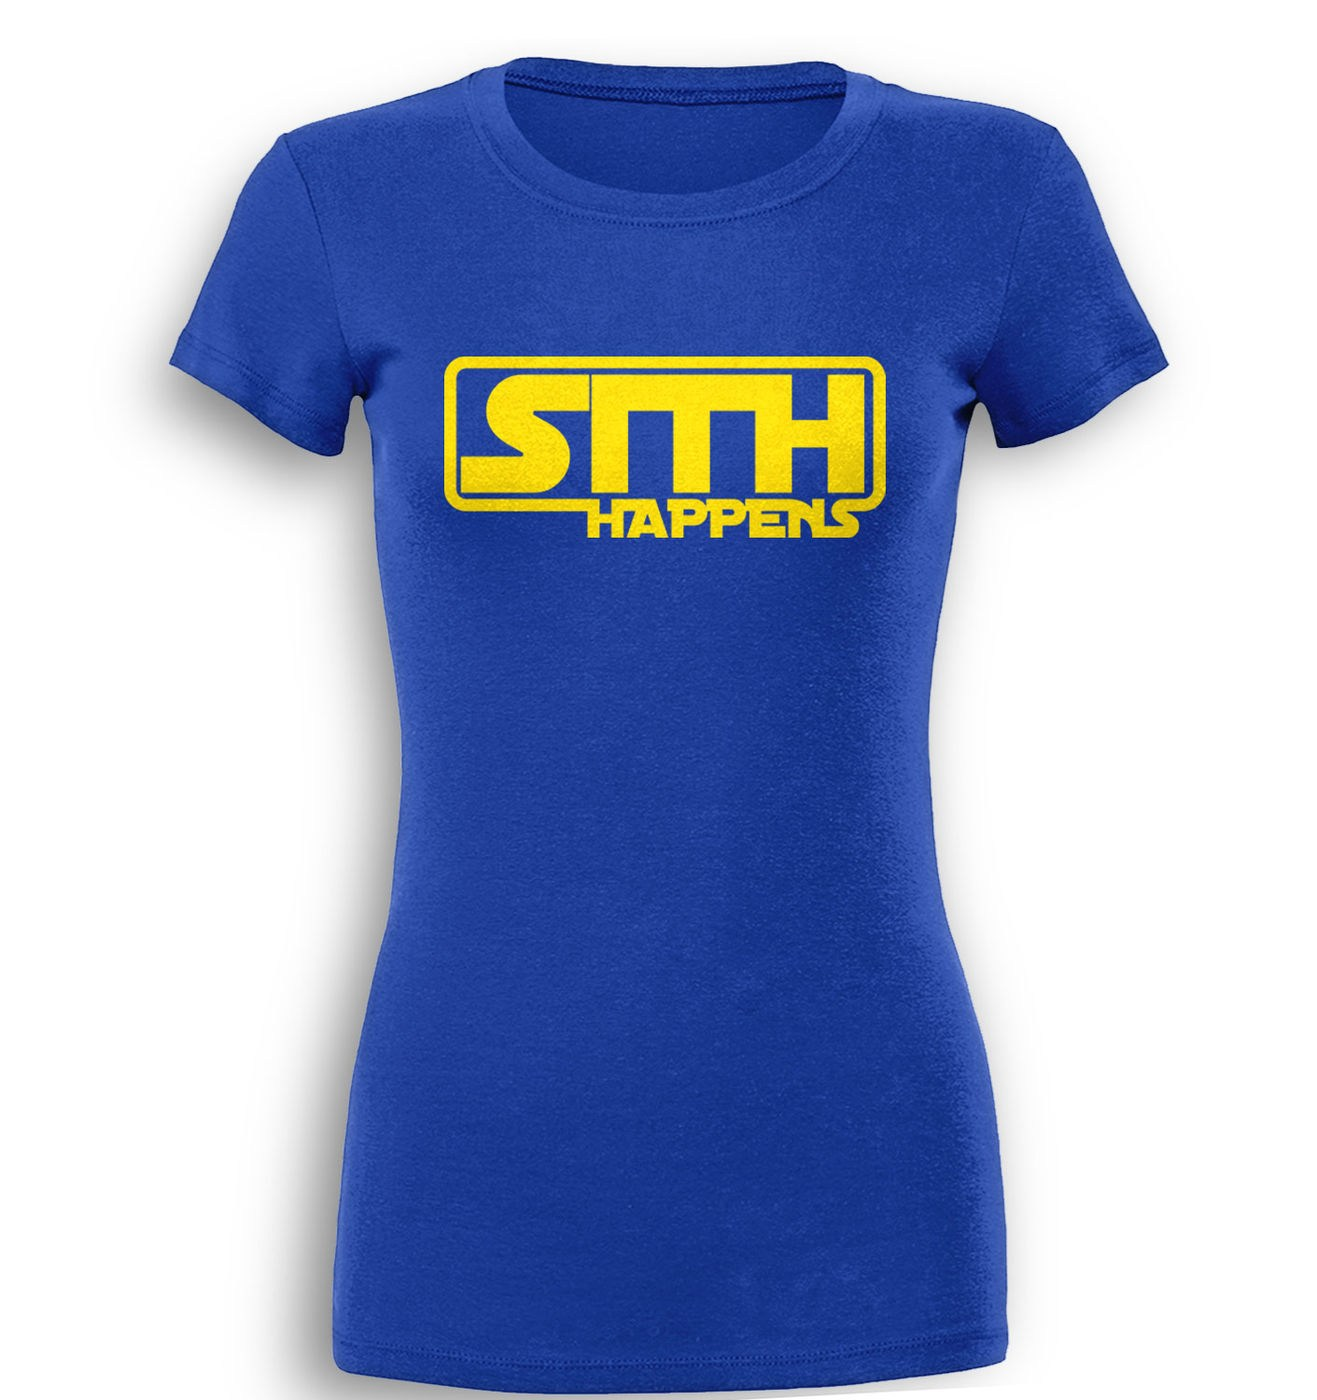 Sith Happens premium women's t-shirt by Something Geeky